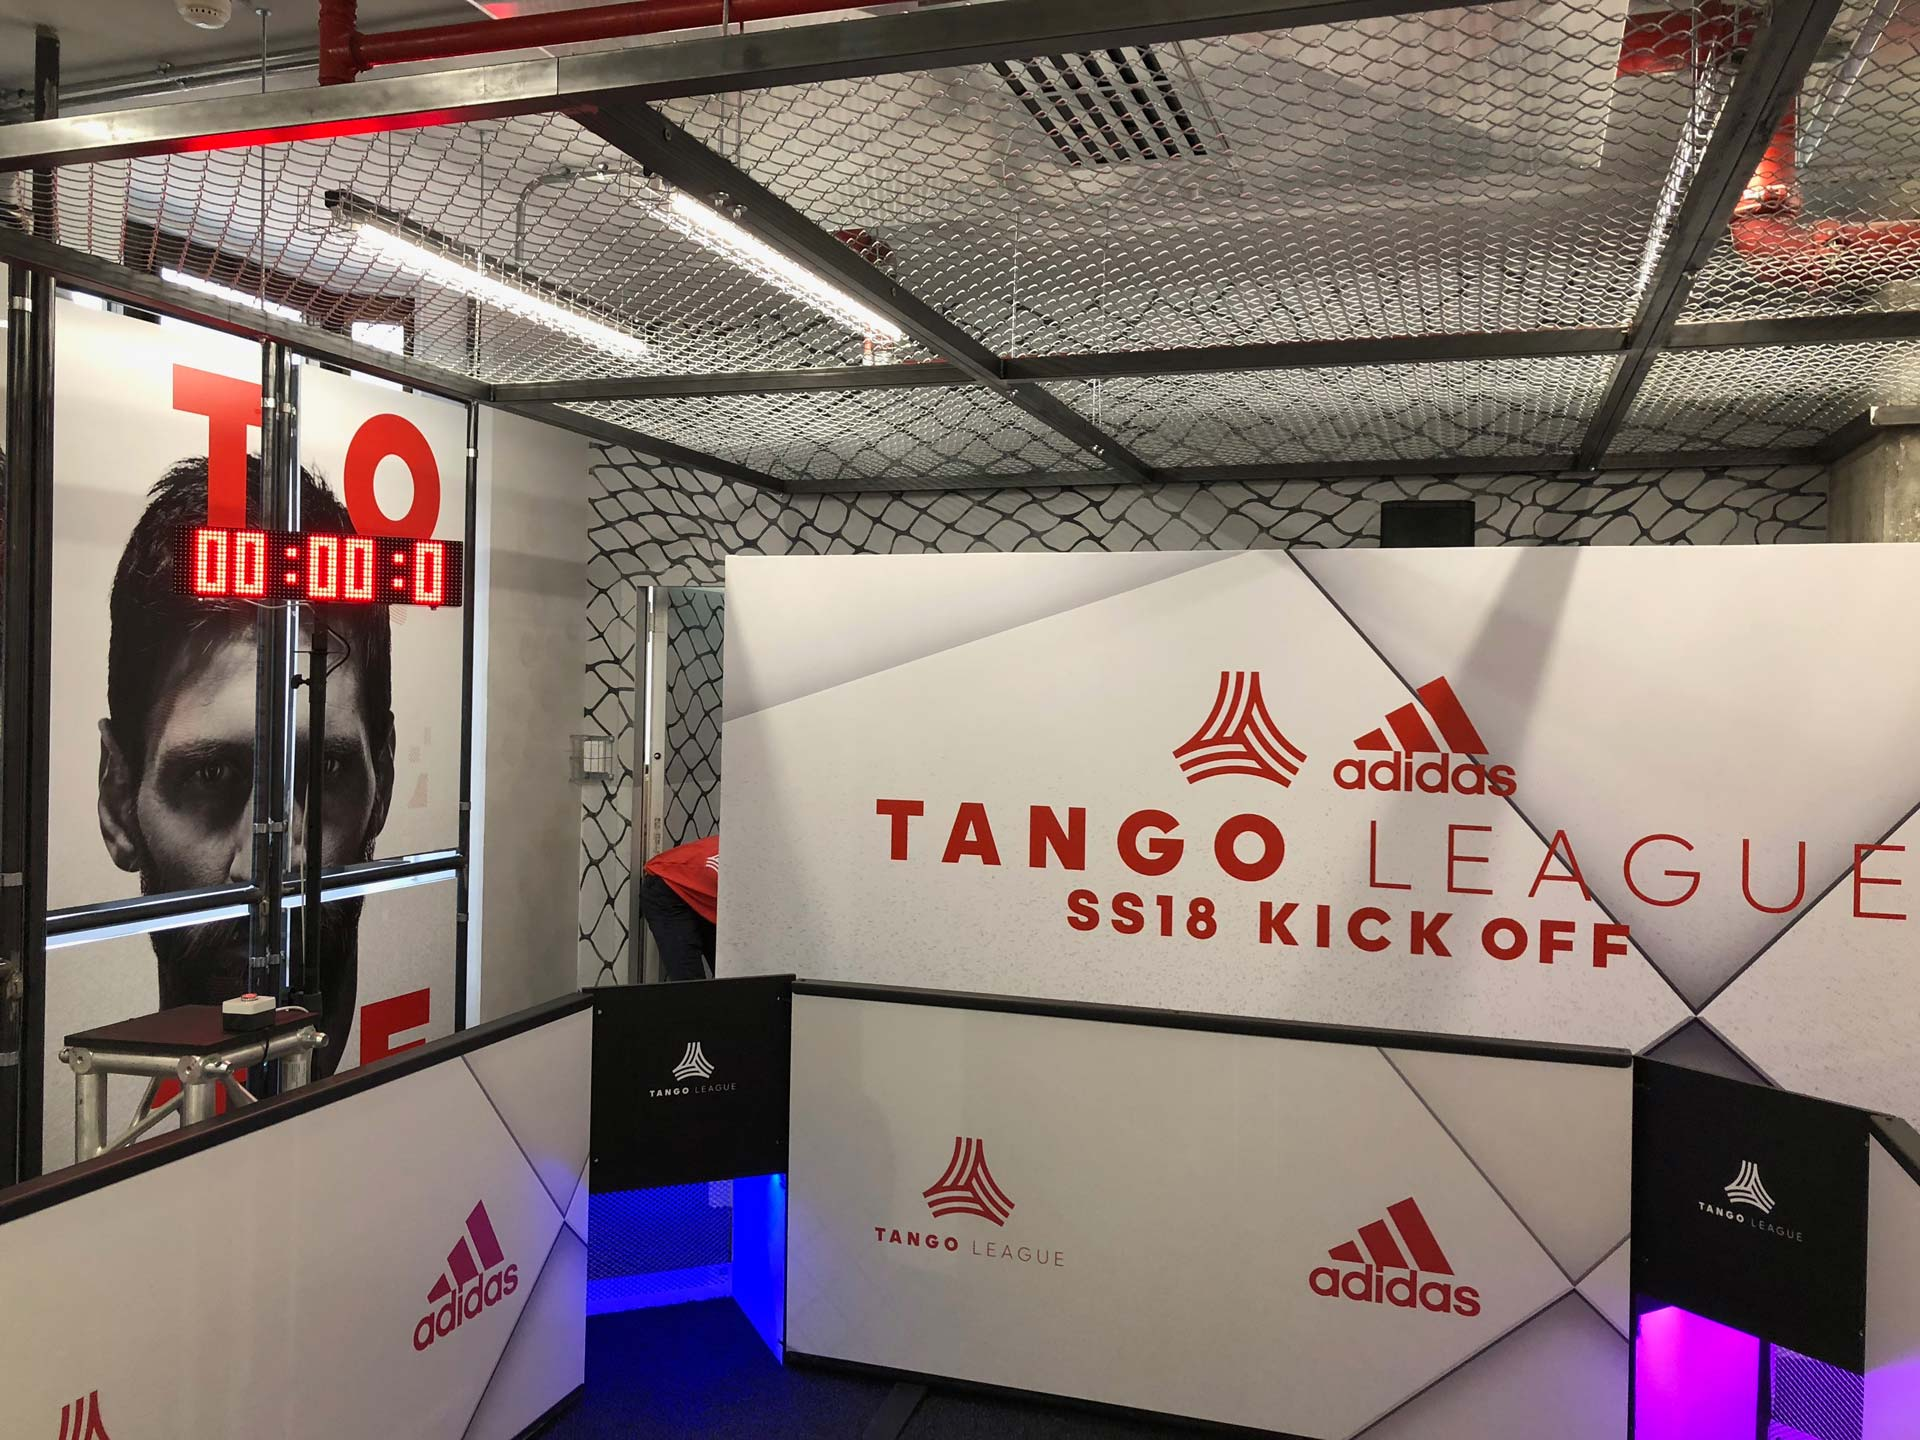 TANGO LEAGUE 2018 ADIDAS ITALIA – KICK OFF